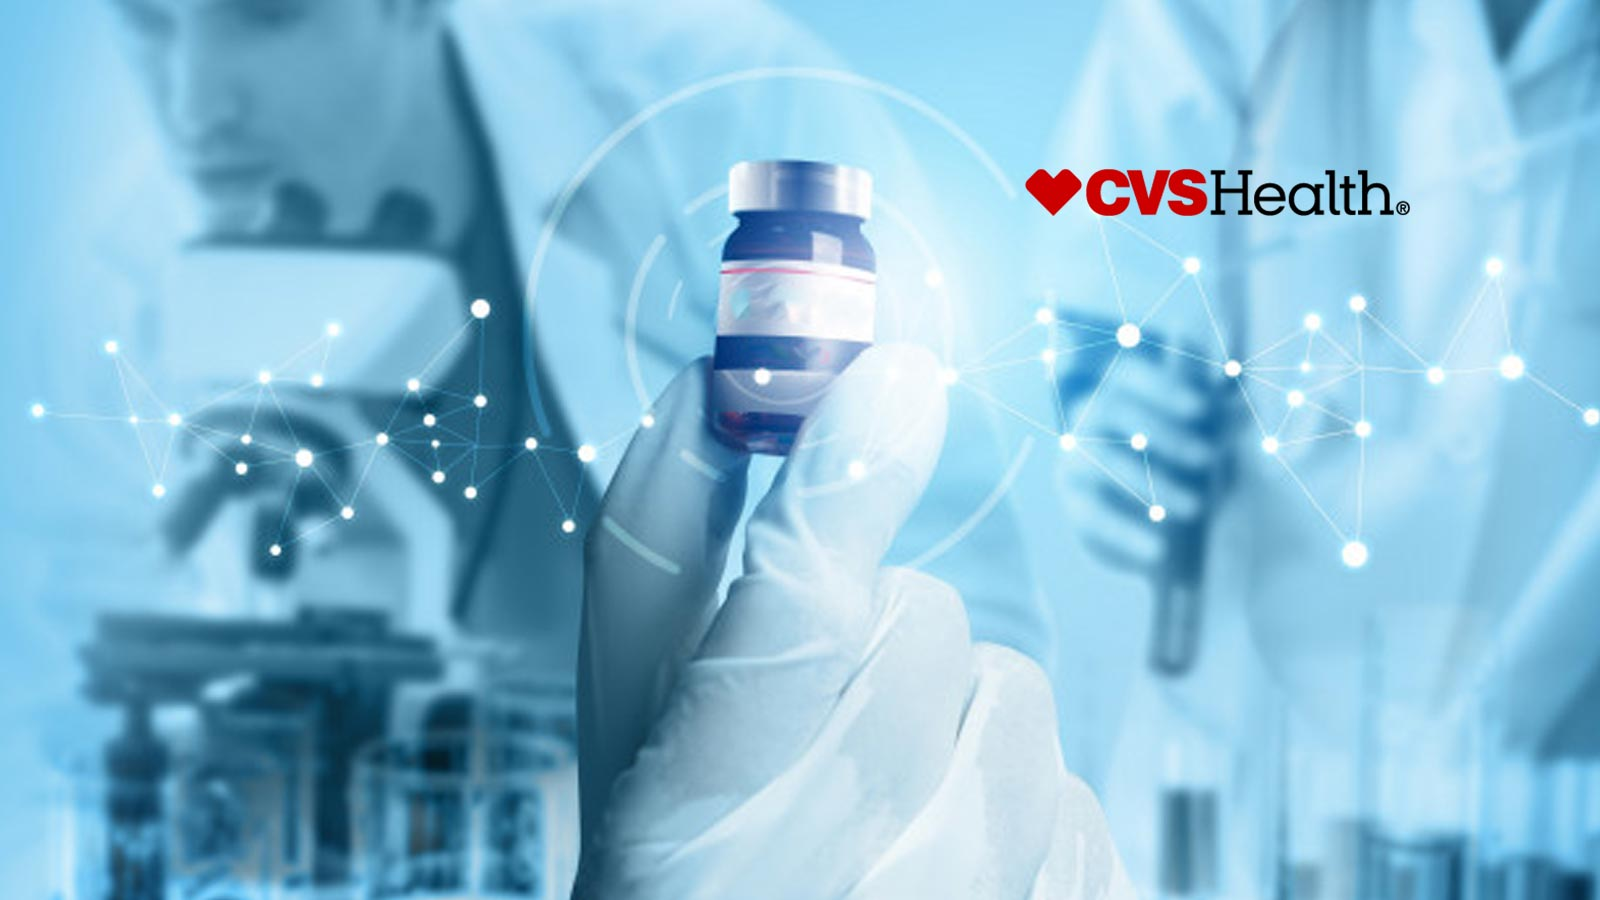 Cvs Health Expands Covid 19 Testing Services